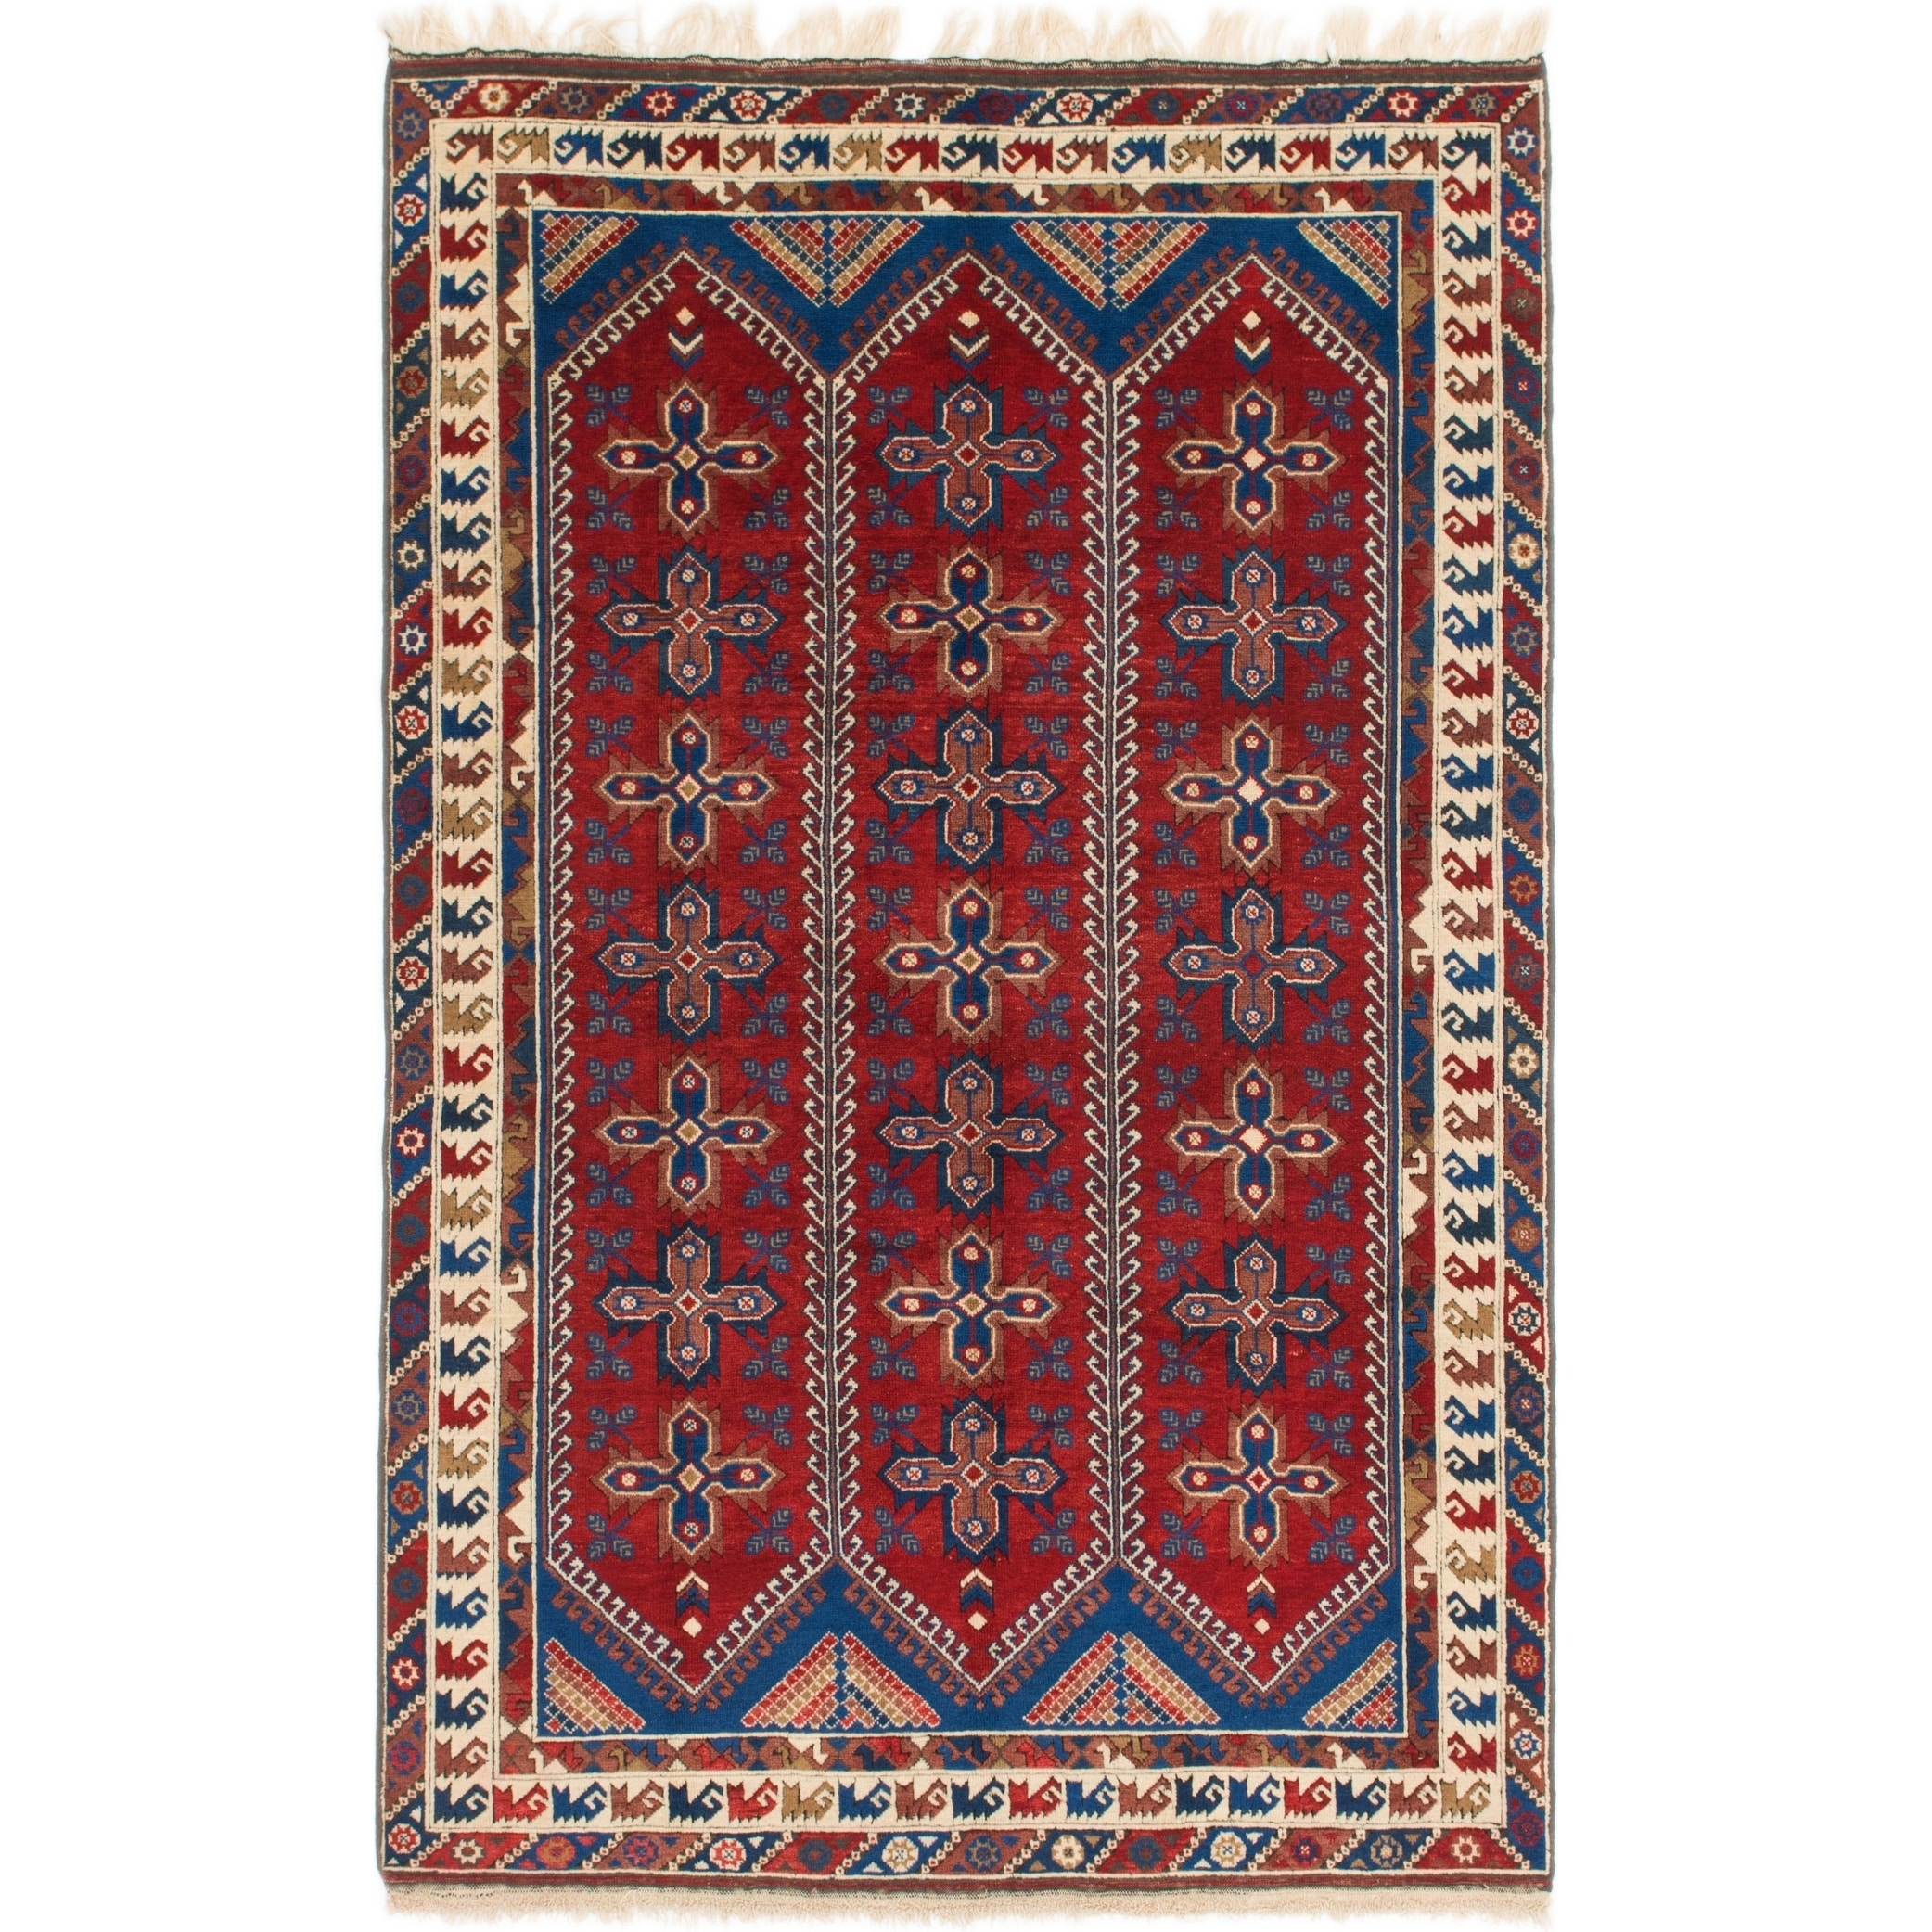 Hand Knotted Kars Wool Area Rug - 6' 3 x 9' 7 (Red - 6' 3 x 9' 7)